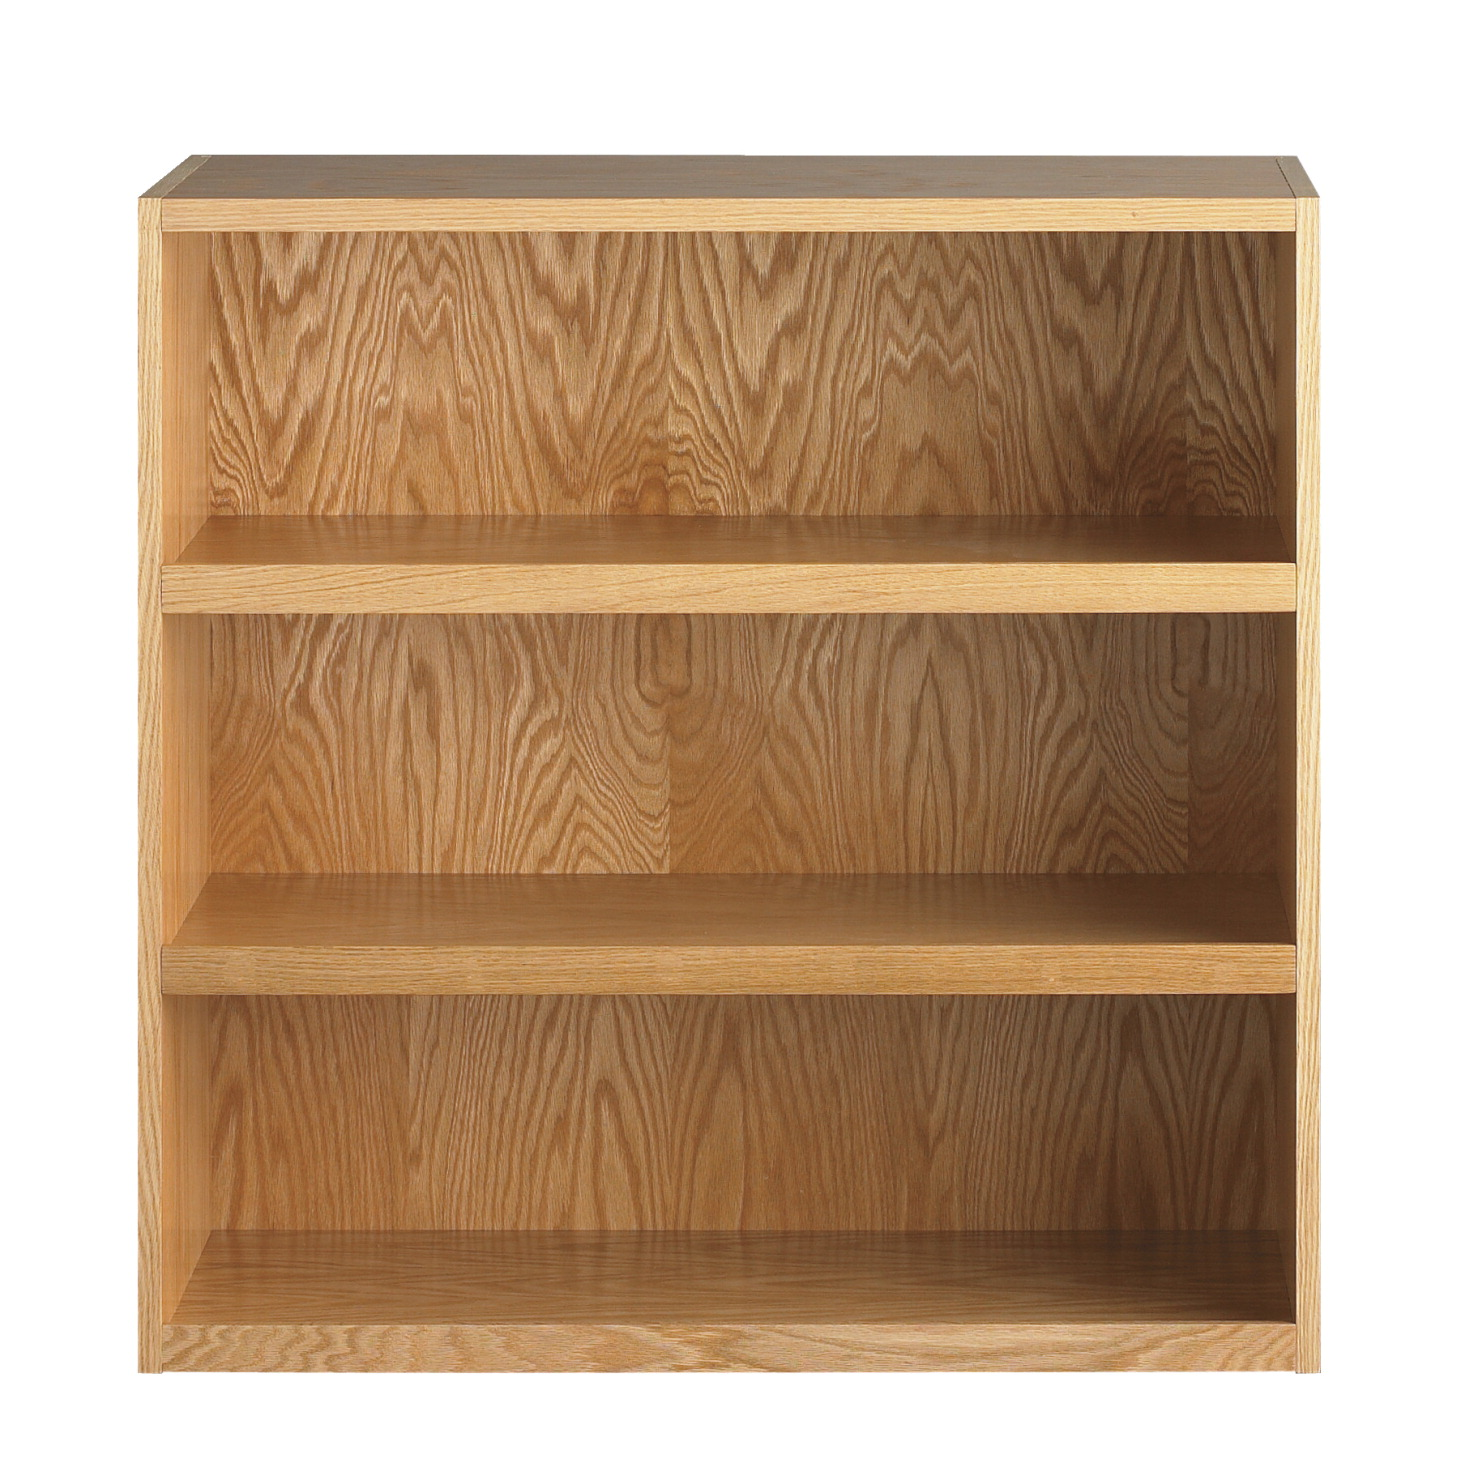 Diversified Woodcrafts Chemical Shelving 36 X 16 In Oak UV